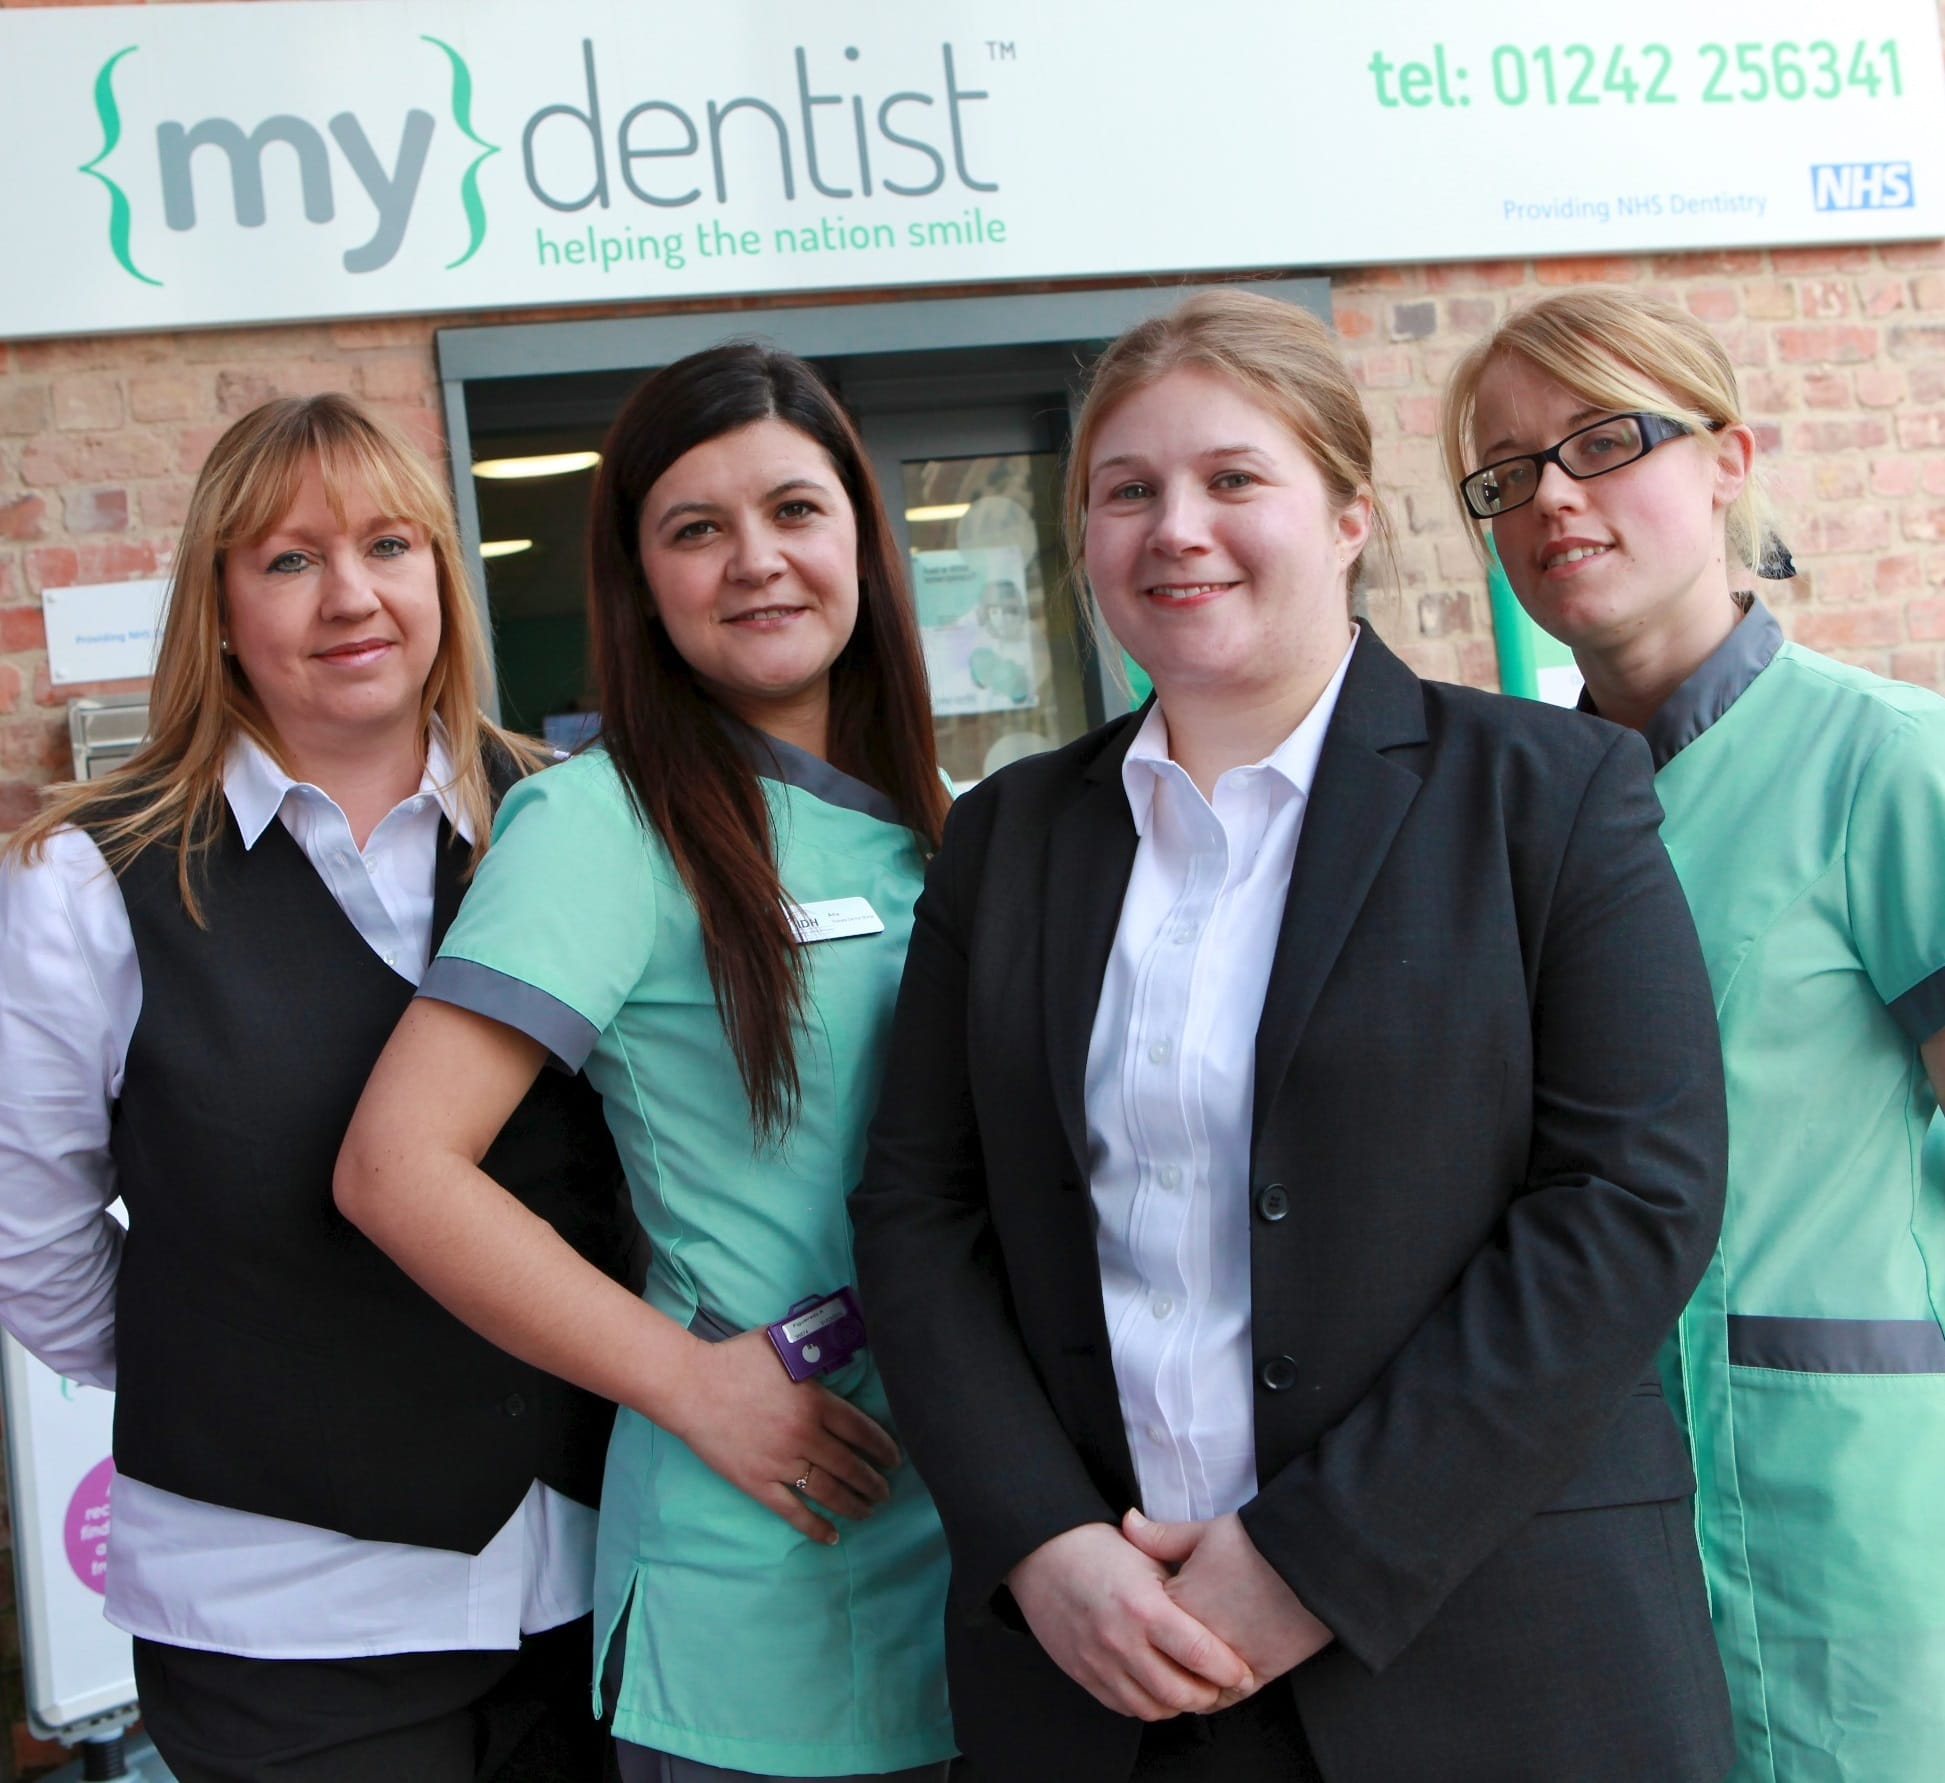 Photos of new re-brand of My Dentist, The Brewery, Henrietta Street, Cheltenham. Practice Manager is Laura Matthews PICTURED: Lesley Hole, Ana Figiueiurdo, Laura Matthews and Kara Tovey. Contact: 01242 256341 Photos by Anna Lythgoe